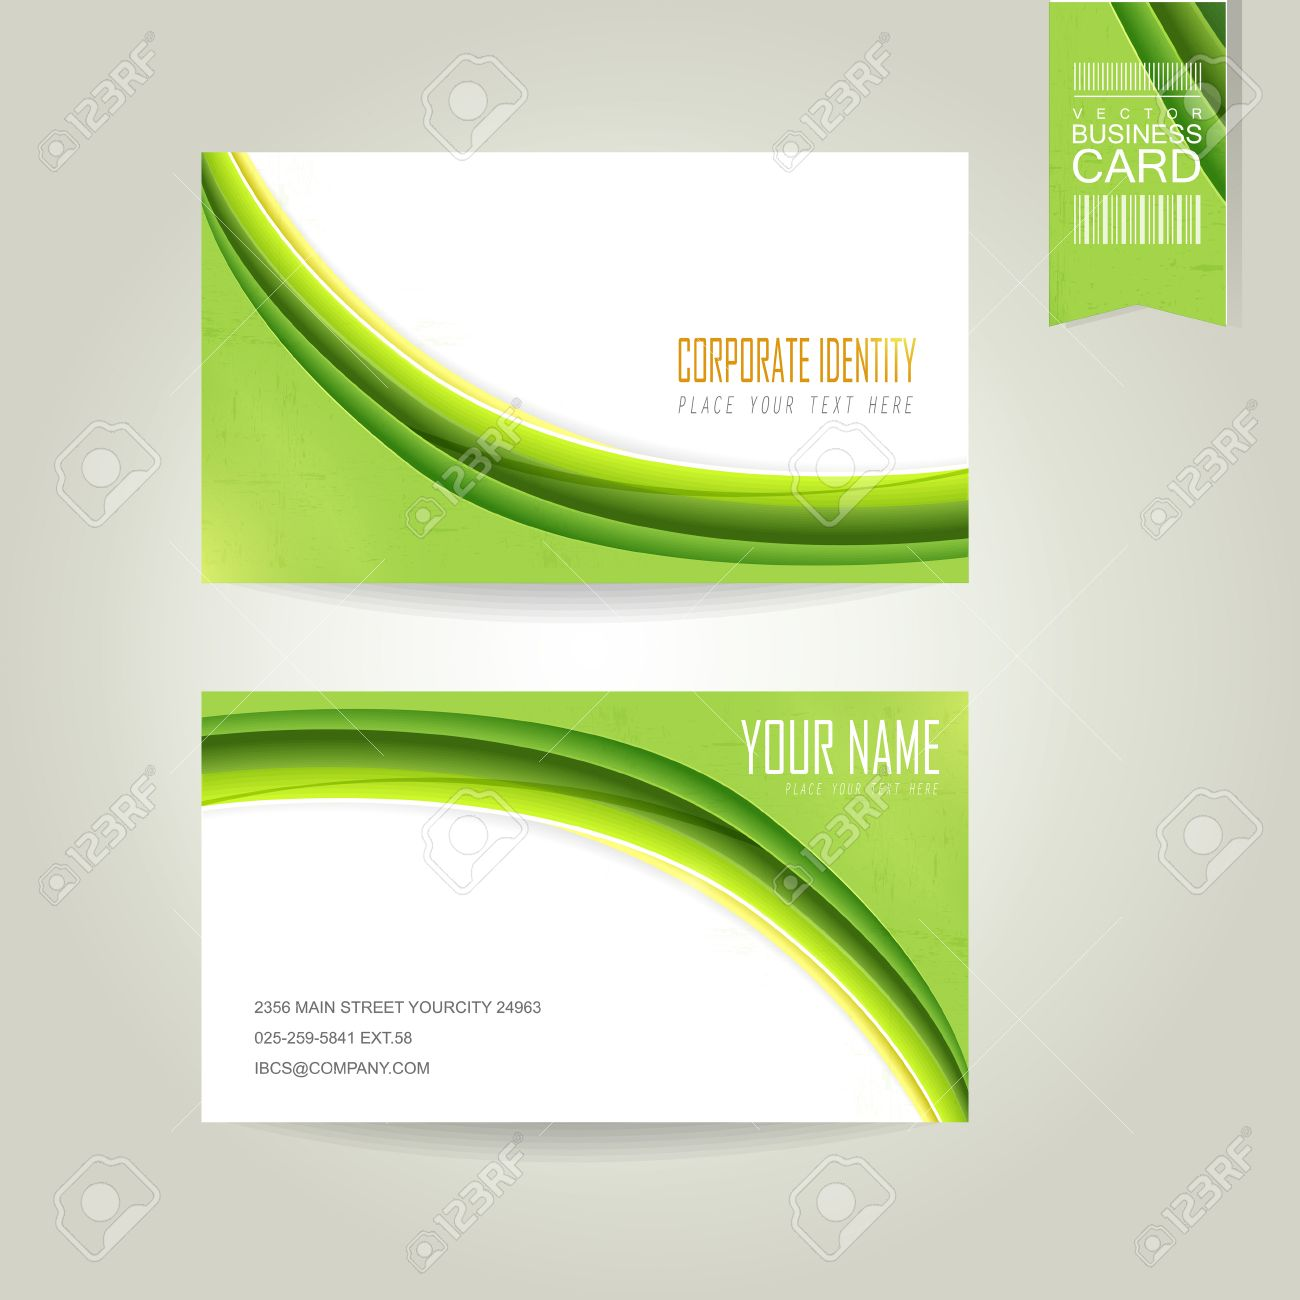 Abstract Ecology Concept Background Business Card Design Template - Business card design template